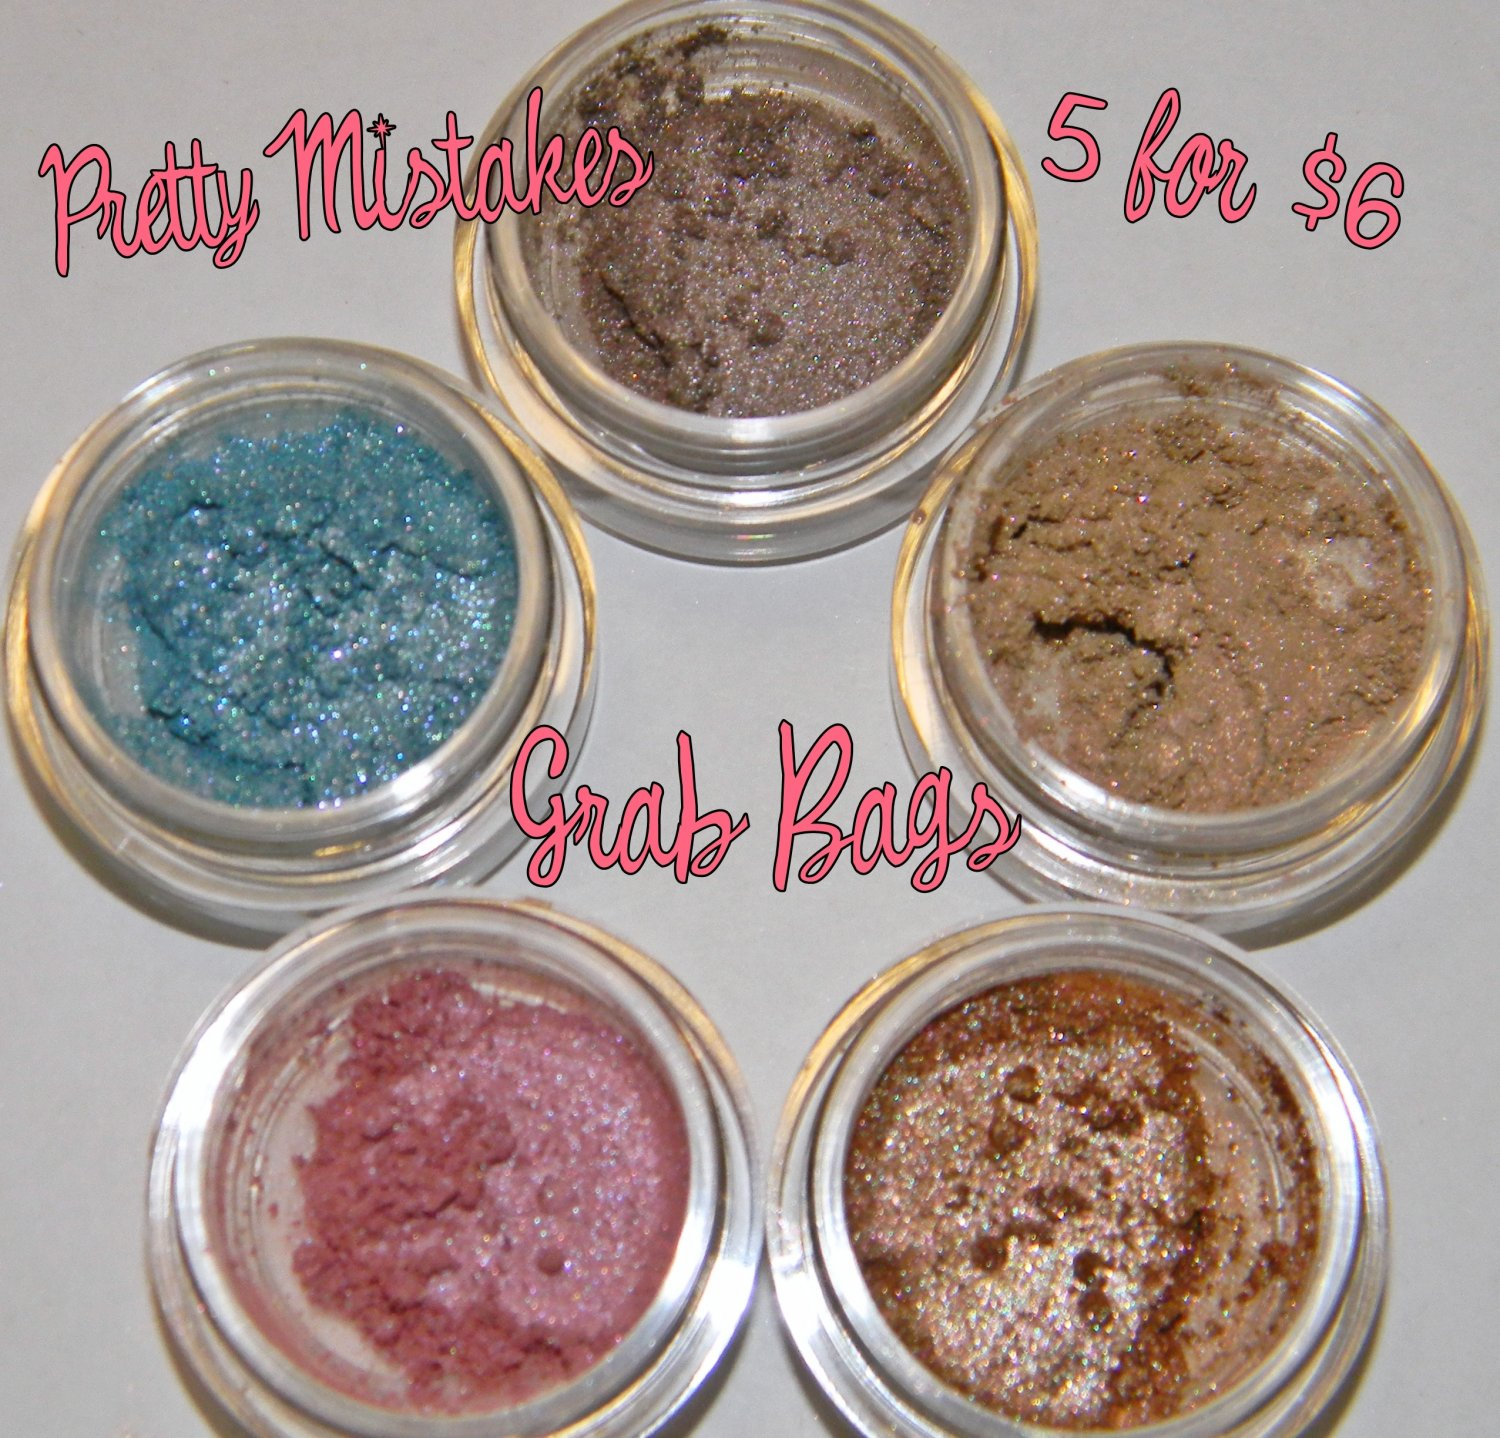 Pretty Mistakes Grab Bags � Darling Girl Cosmetics